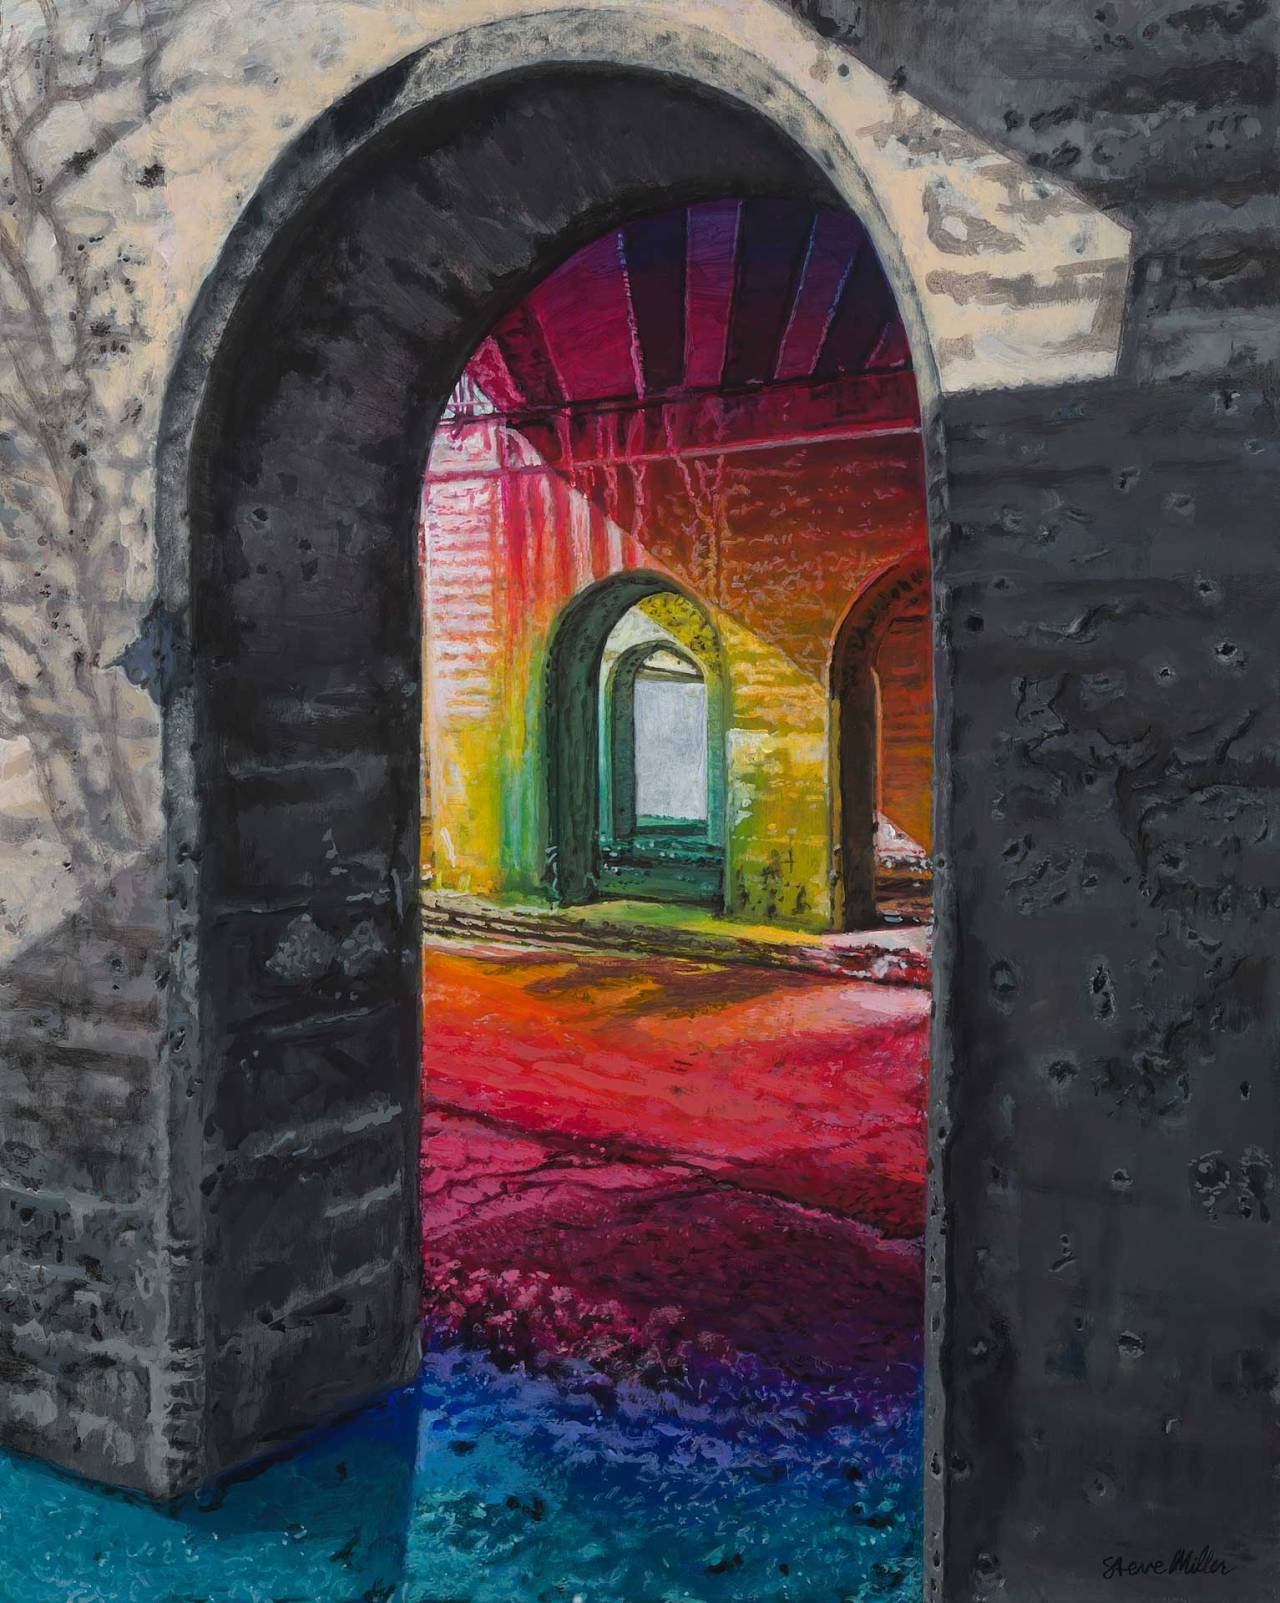 Colorful expressive painting by Steve Miller of an interpretation of a viaduct.